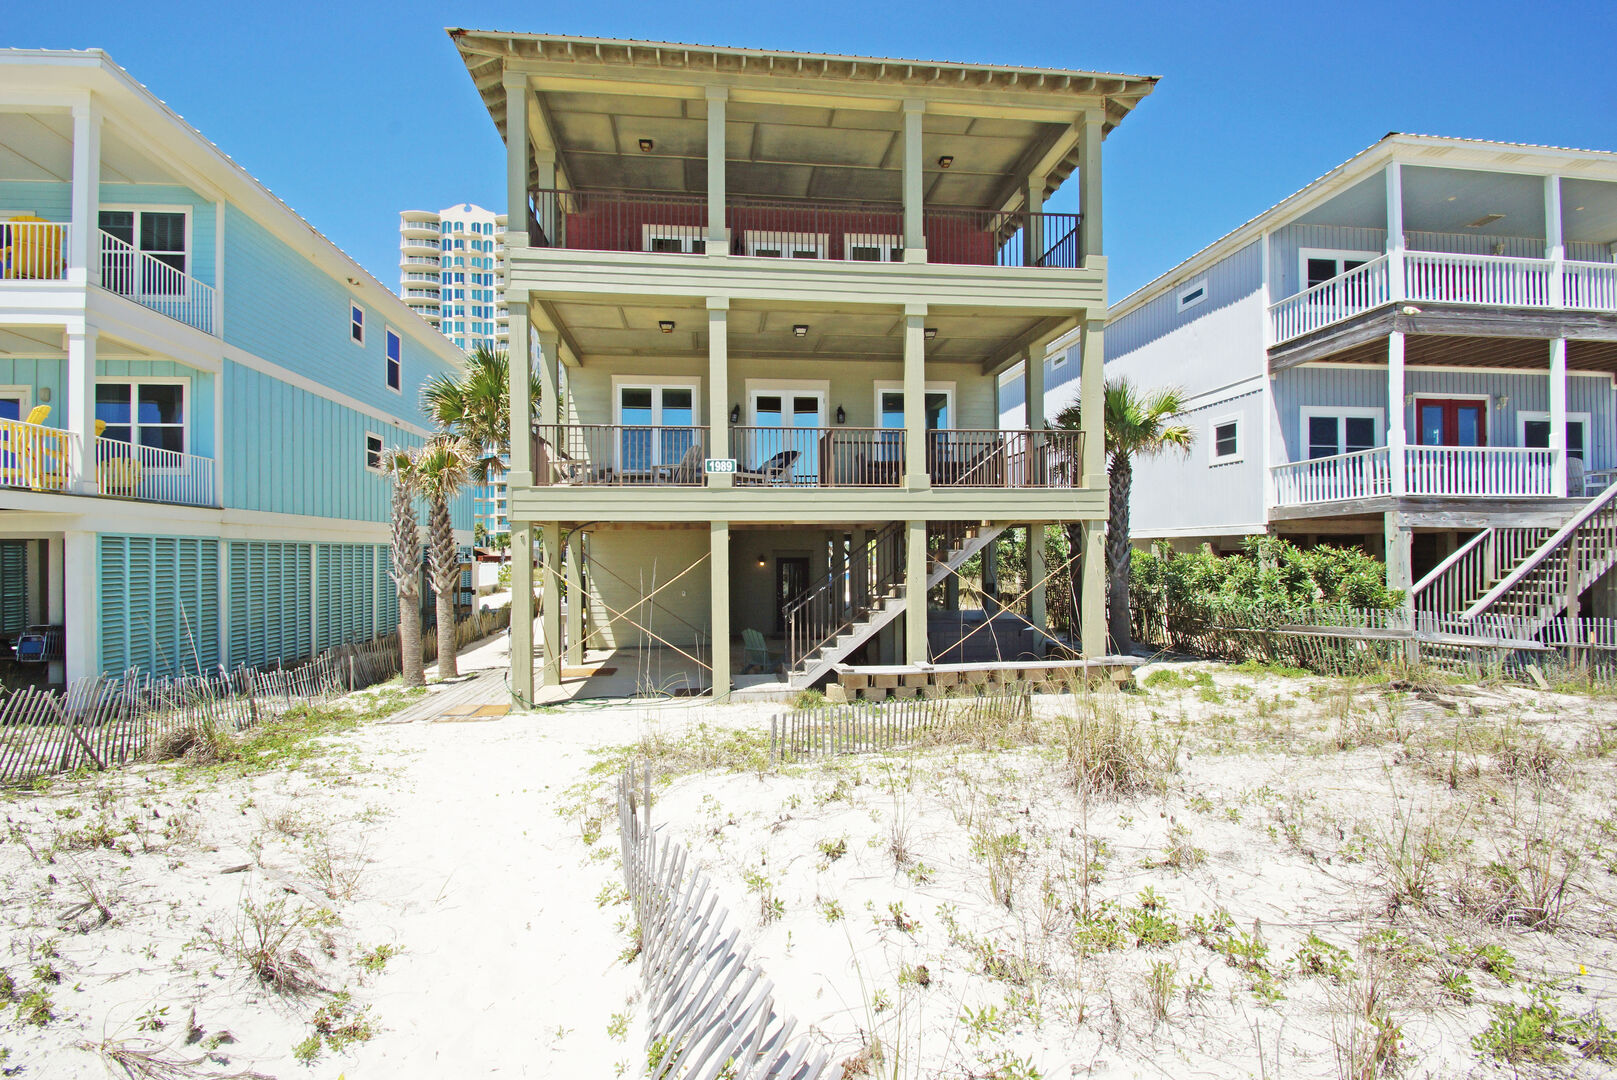 Front Picture of our Beach House.